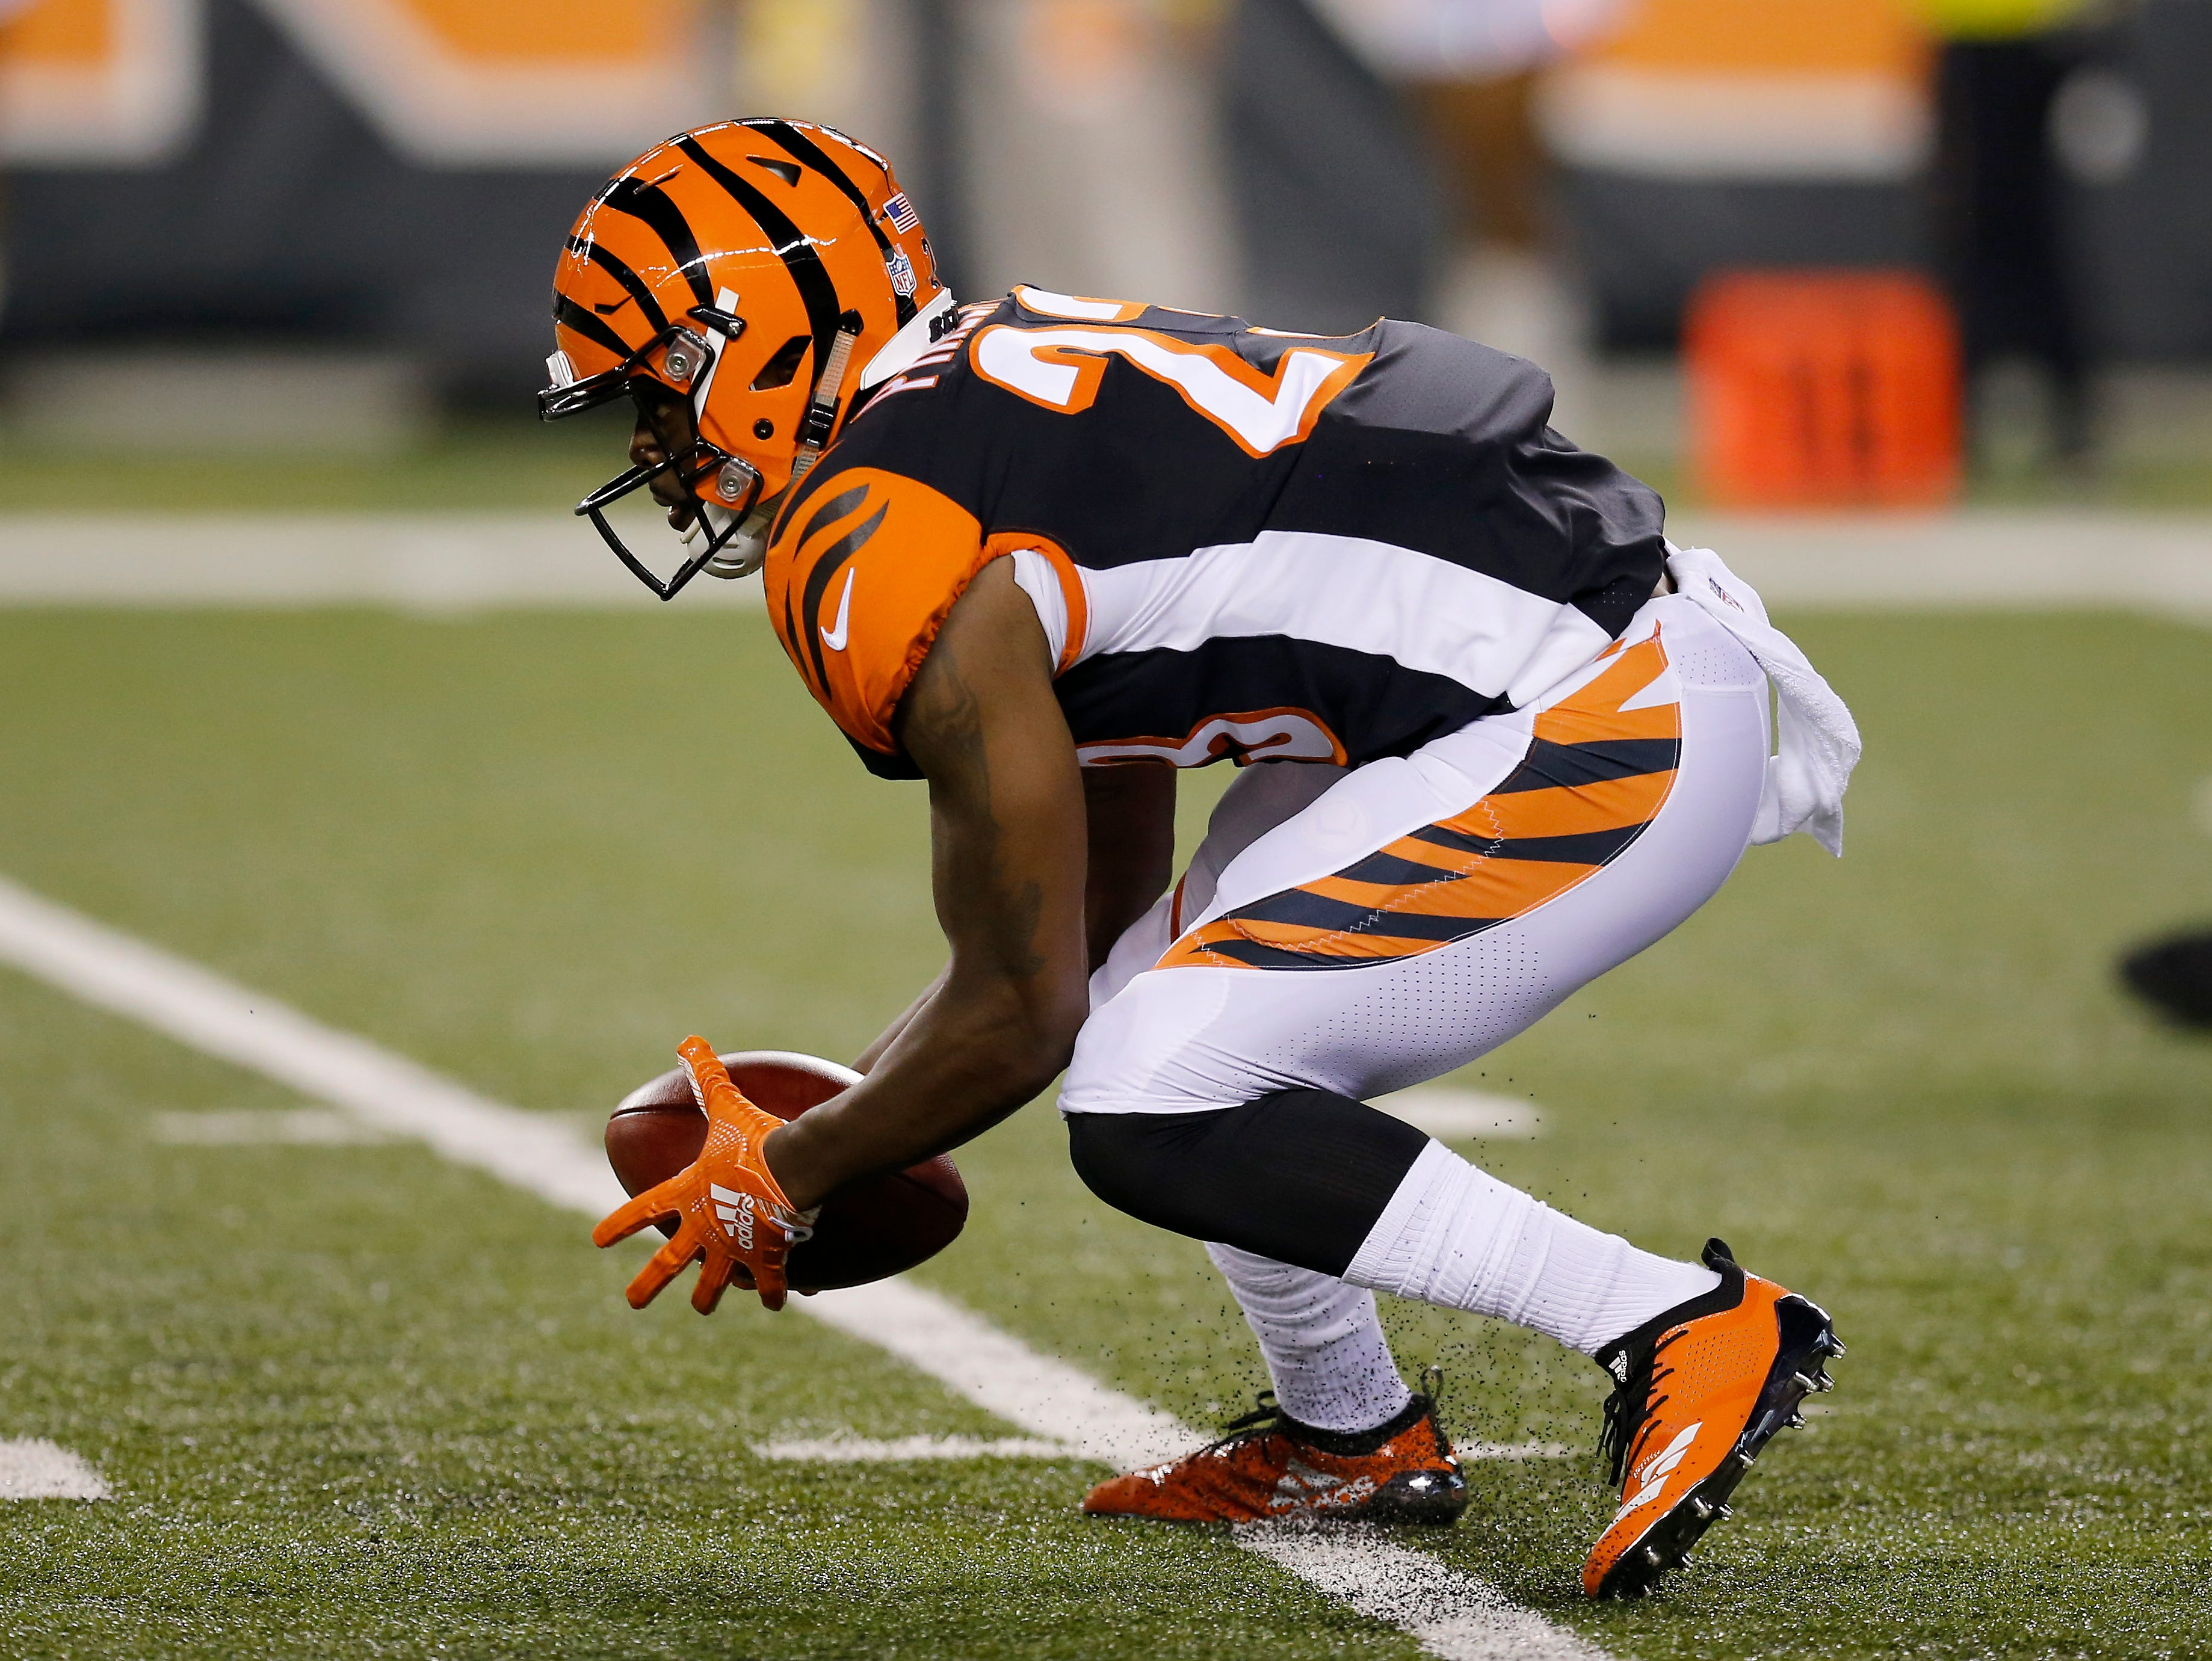 Cincinnati Bengals cornerback Darius Phillips (23) regathers a dropped punt in the first quarter of the NFL Week 2 game between the Cincinnati Bengals and the Baltimore Ravens at Paul Brown Stadium in downtown Cincinnati on Thursday, Sept. 13, 2018. The Bengals led 28-14 at halftime.